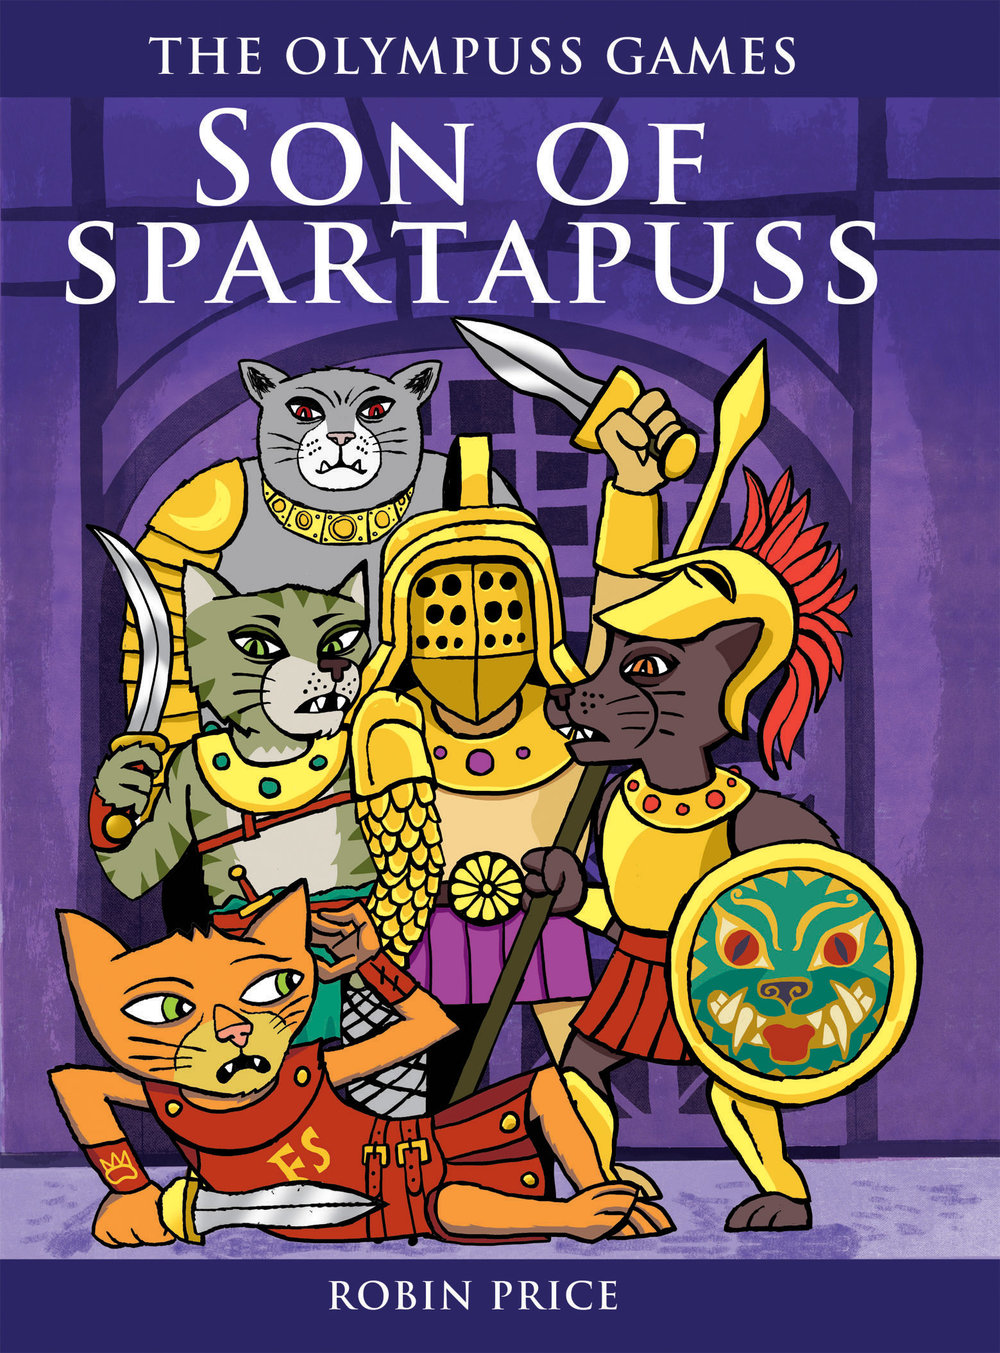 Olympuss-Games_Book1_son_of_spartapuss.jpg